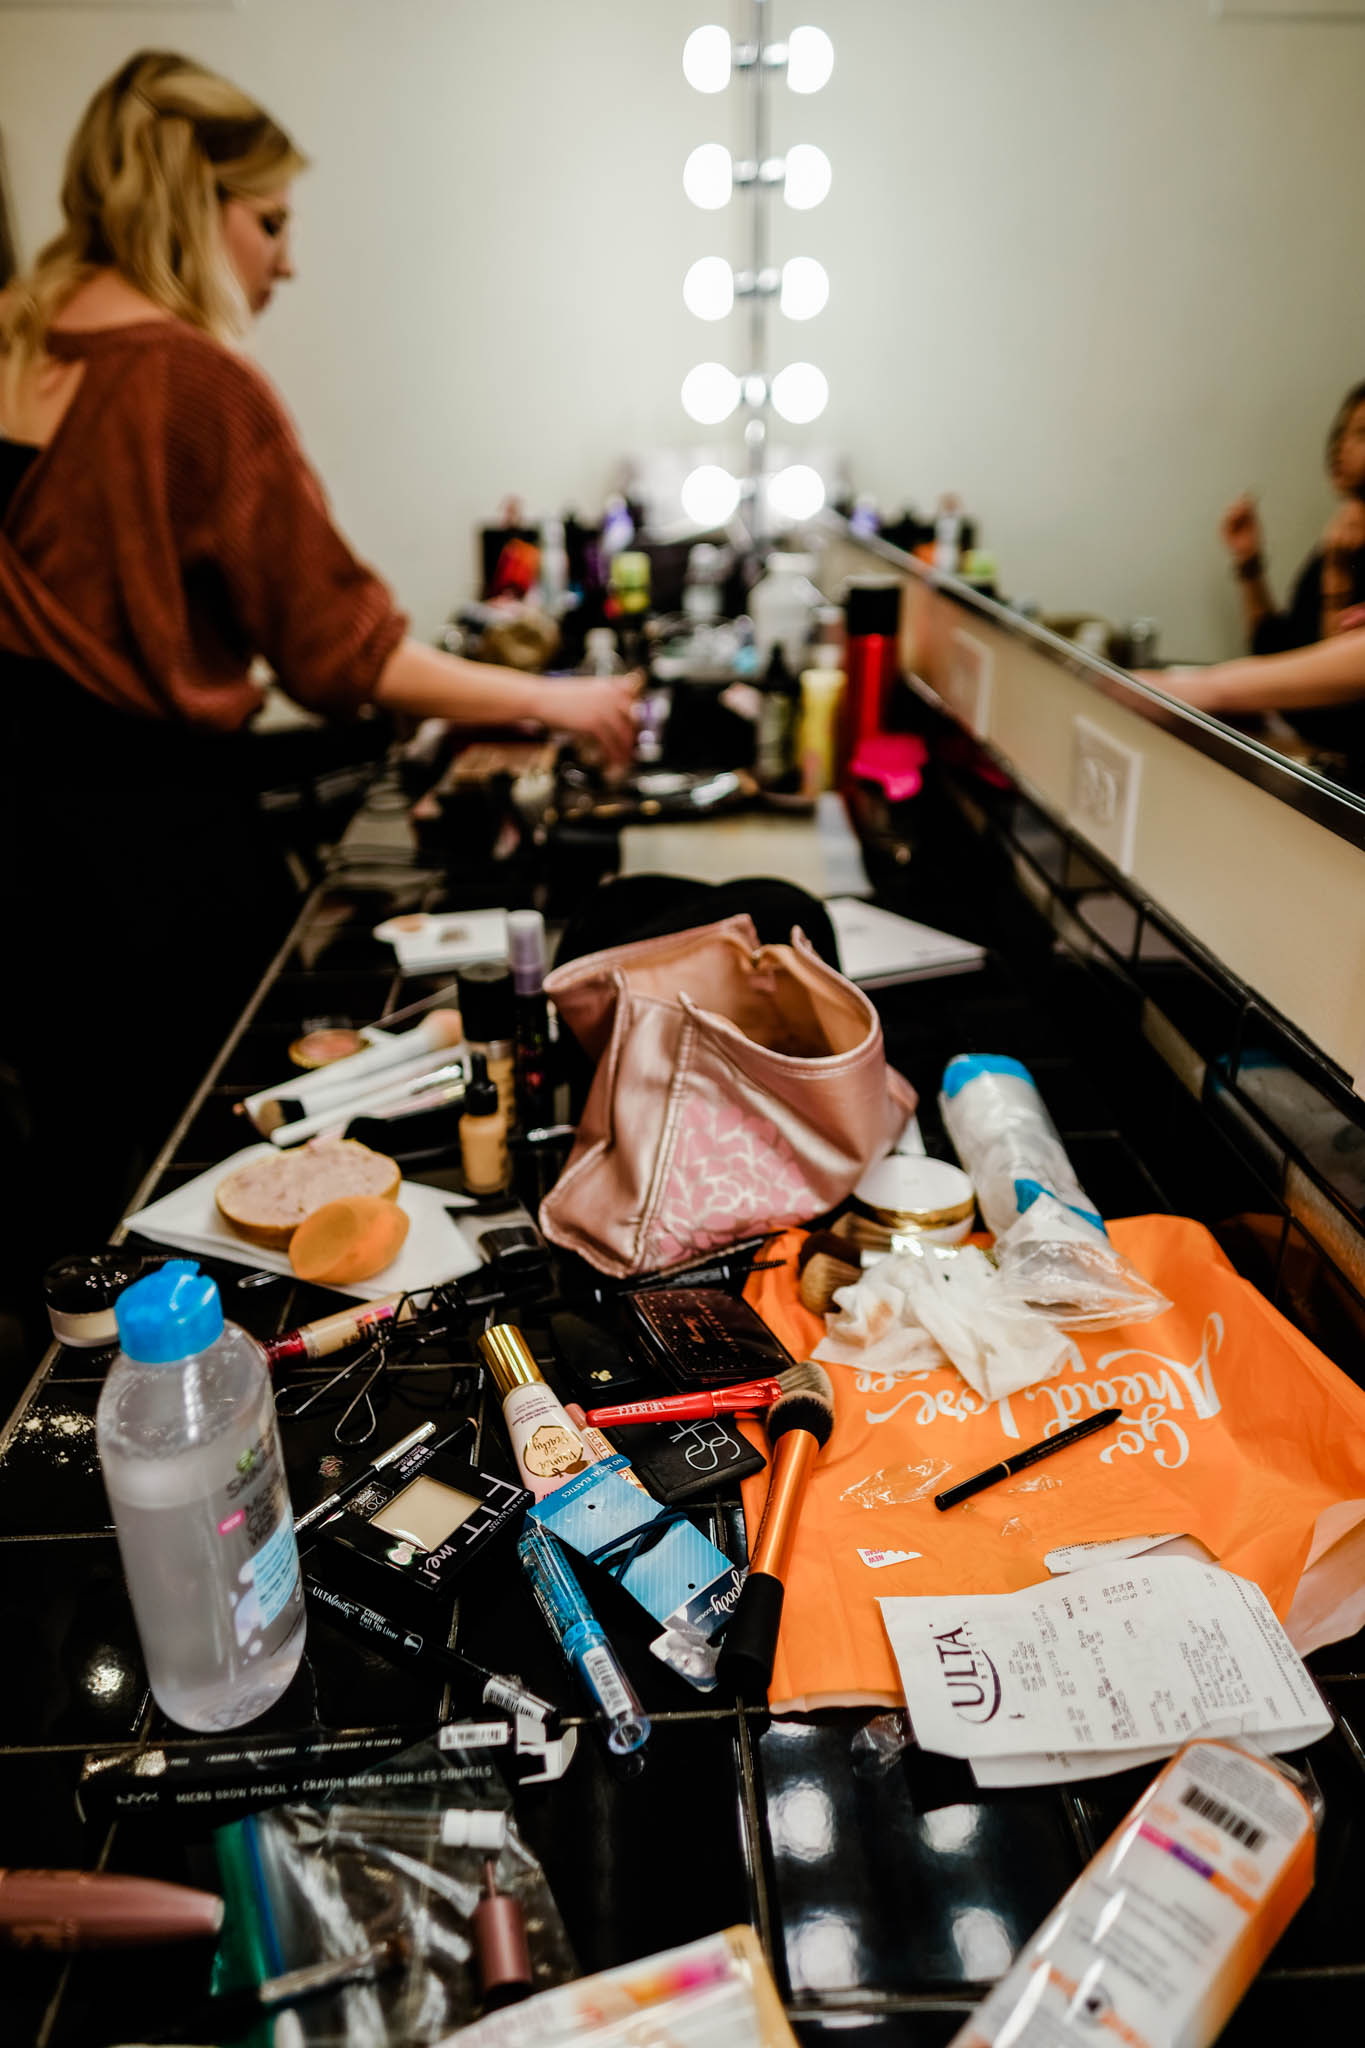 Makeup on counter | Durham Wedding Photography | By G. Lin Photography